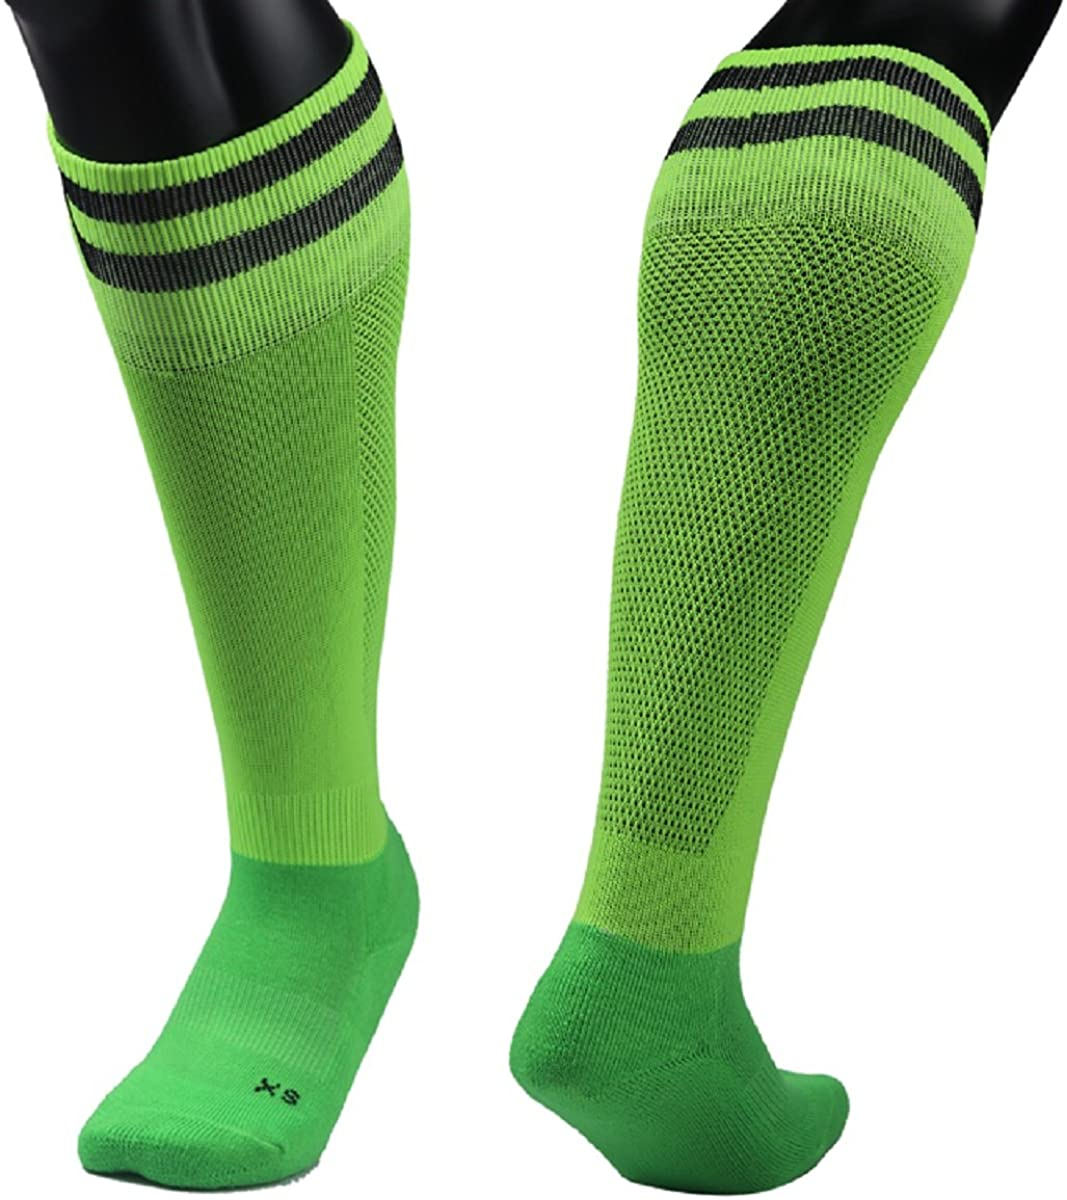 Lian LifeStyle Children's Adult 1 Pair Exceptional Knee High Sports Socks Striped XL003